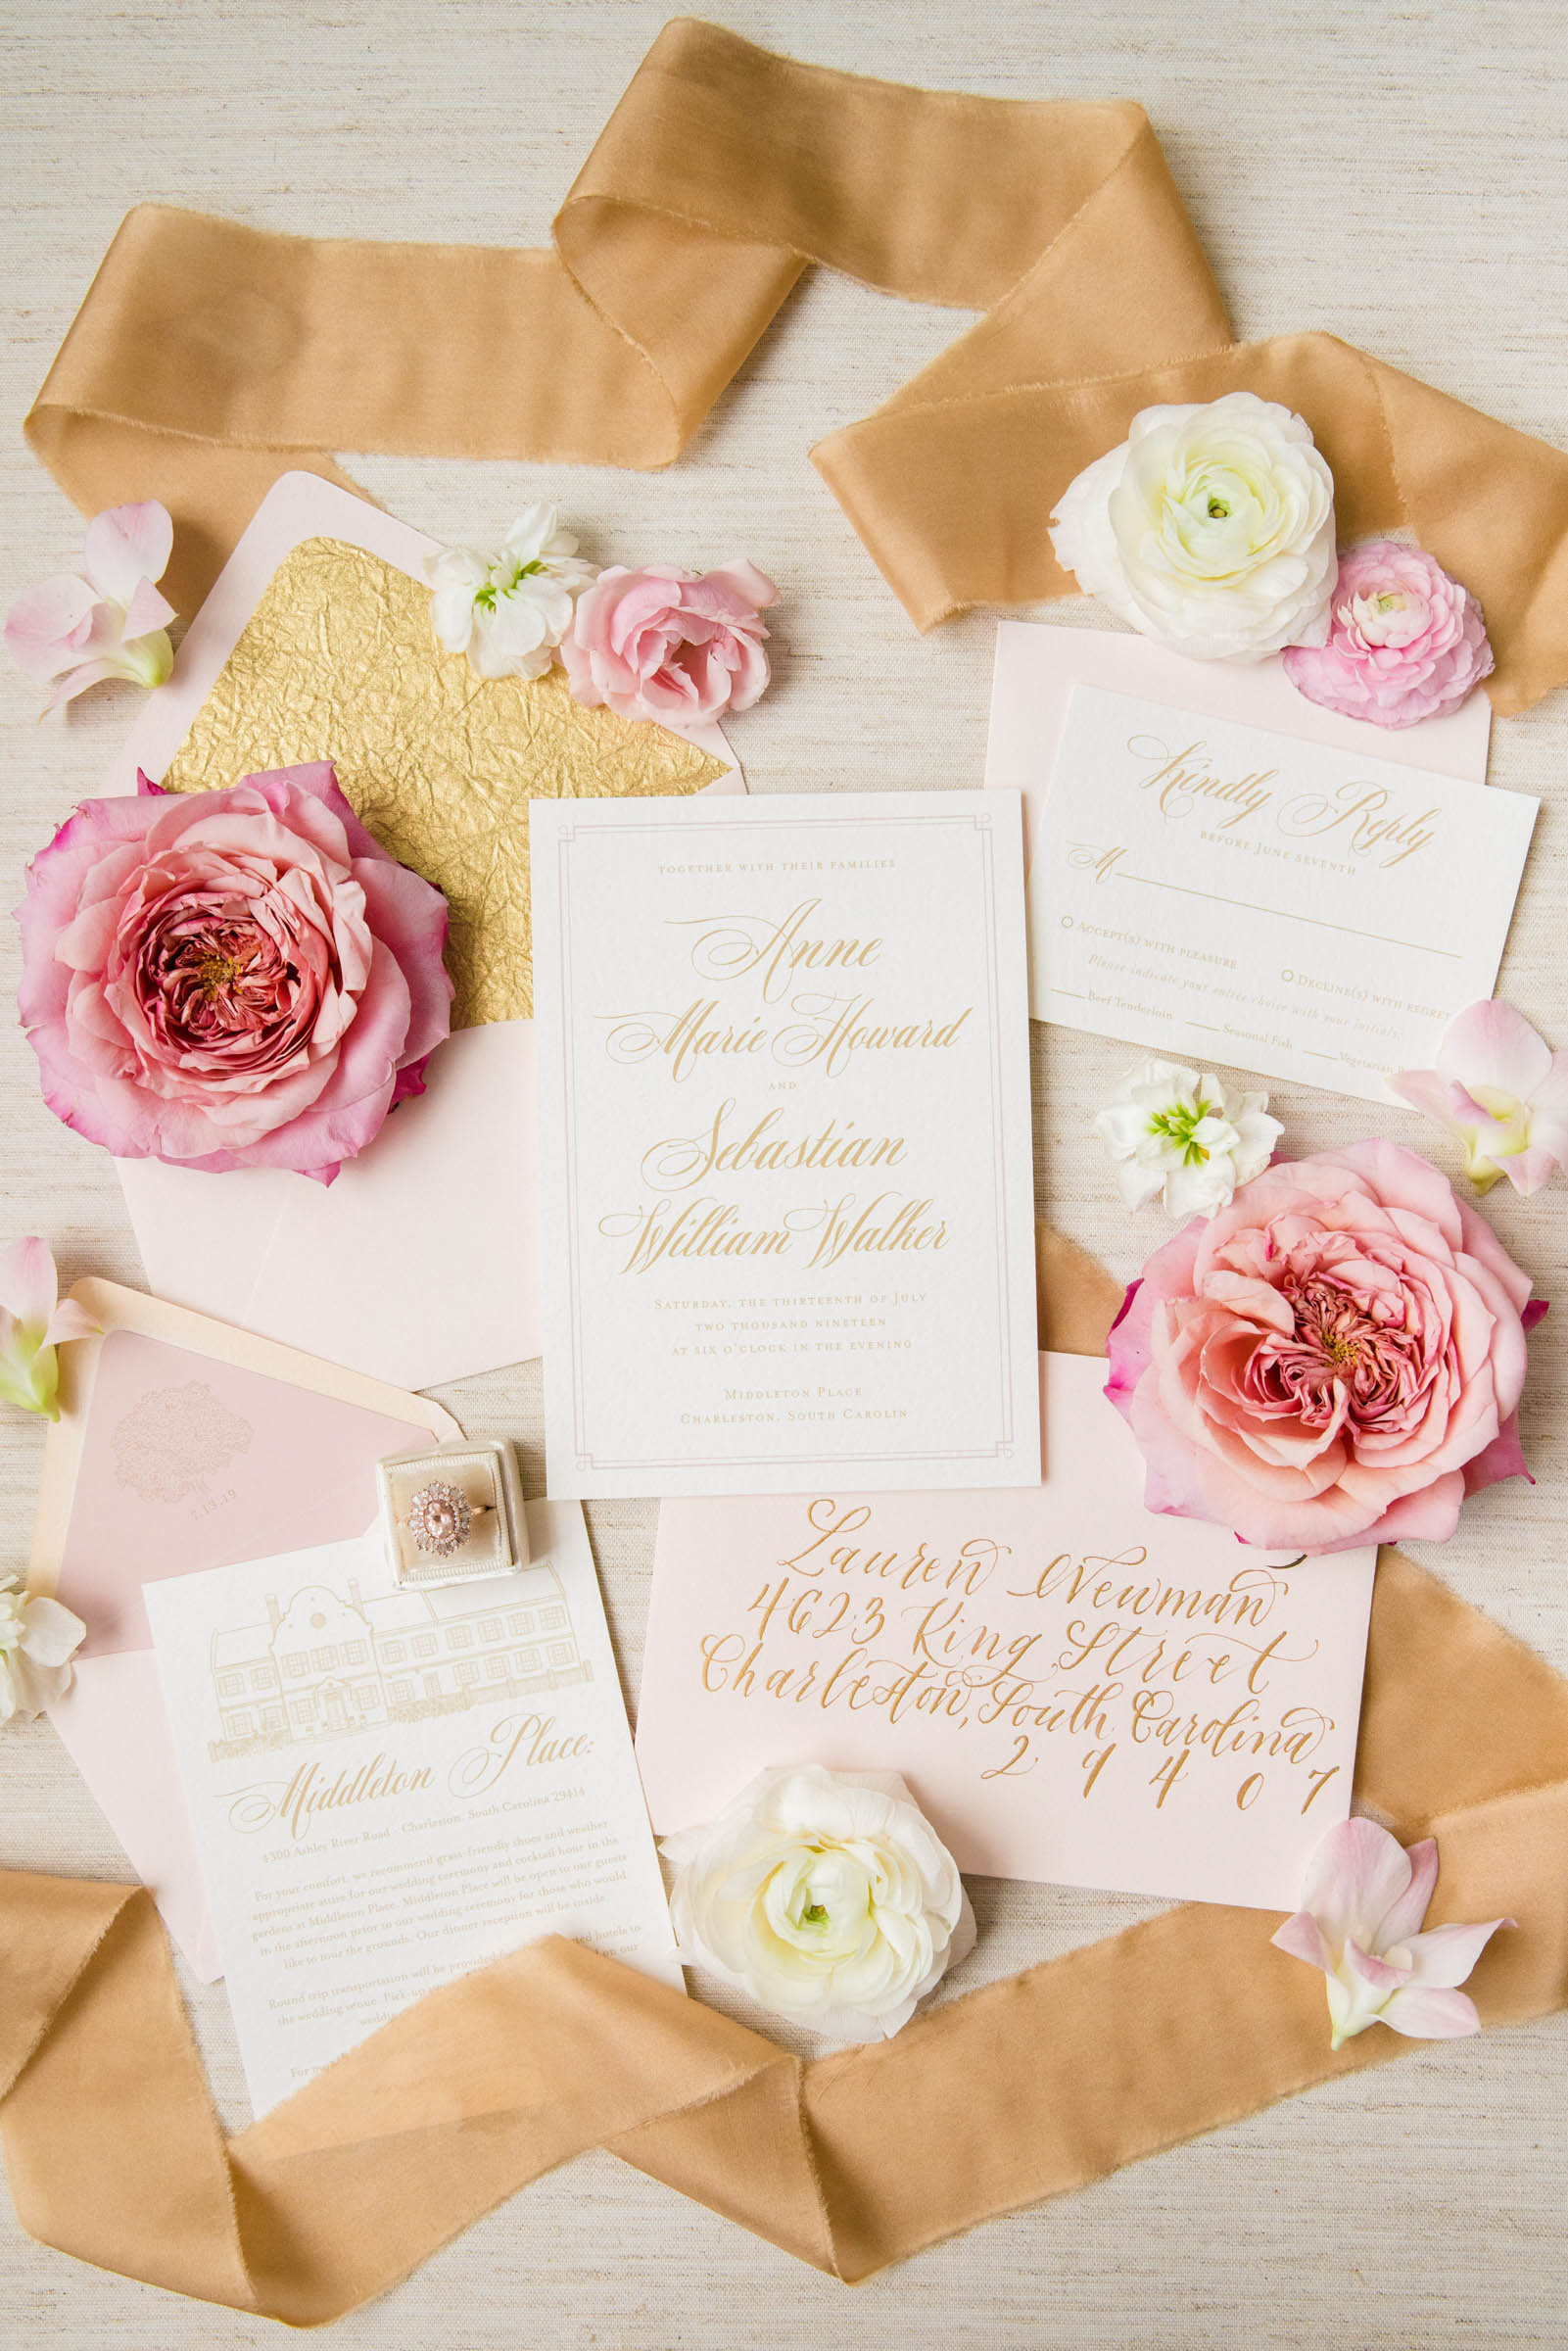 Flat lay including invitations envelopes roses ribbons - photo by Dana Cubbage Weddings